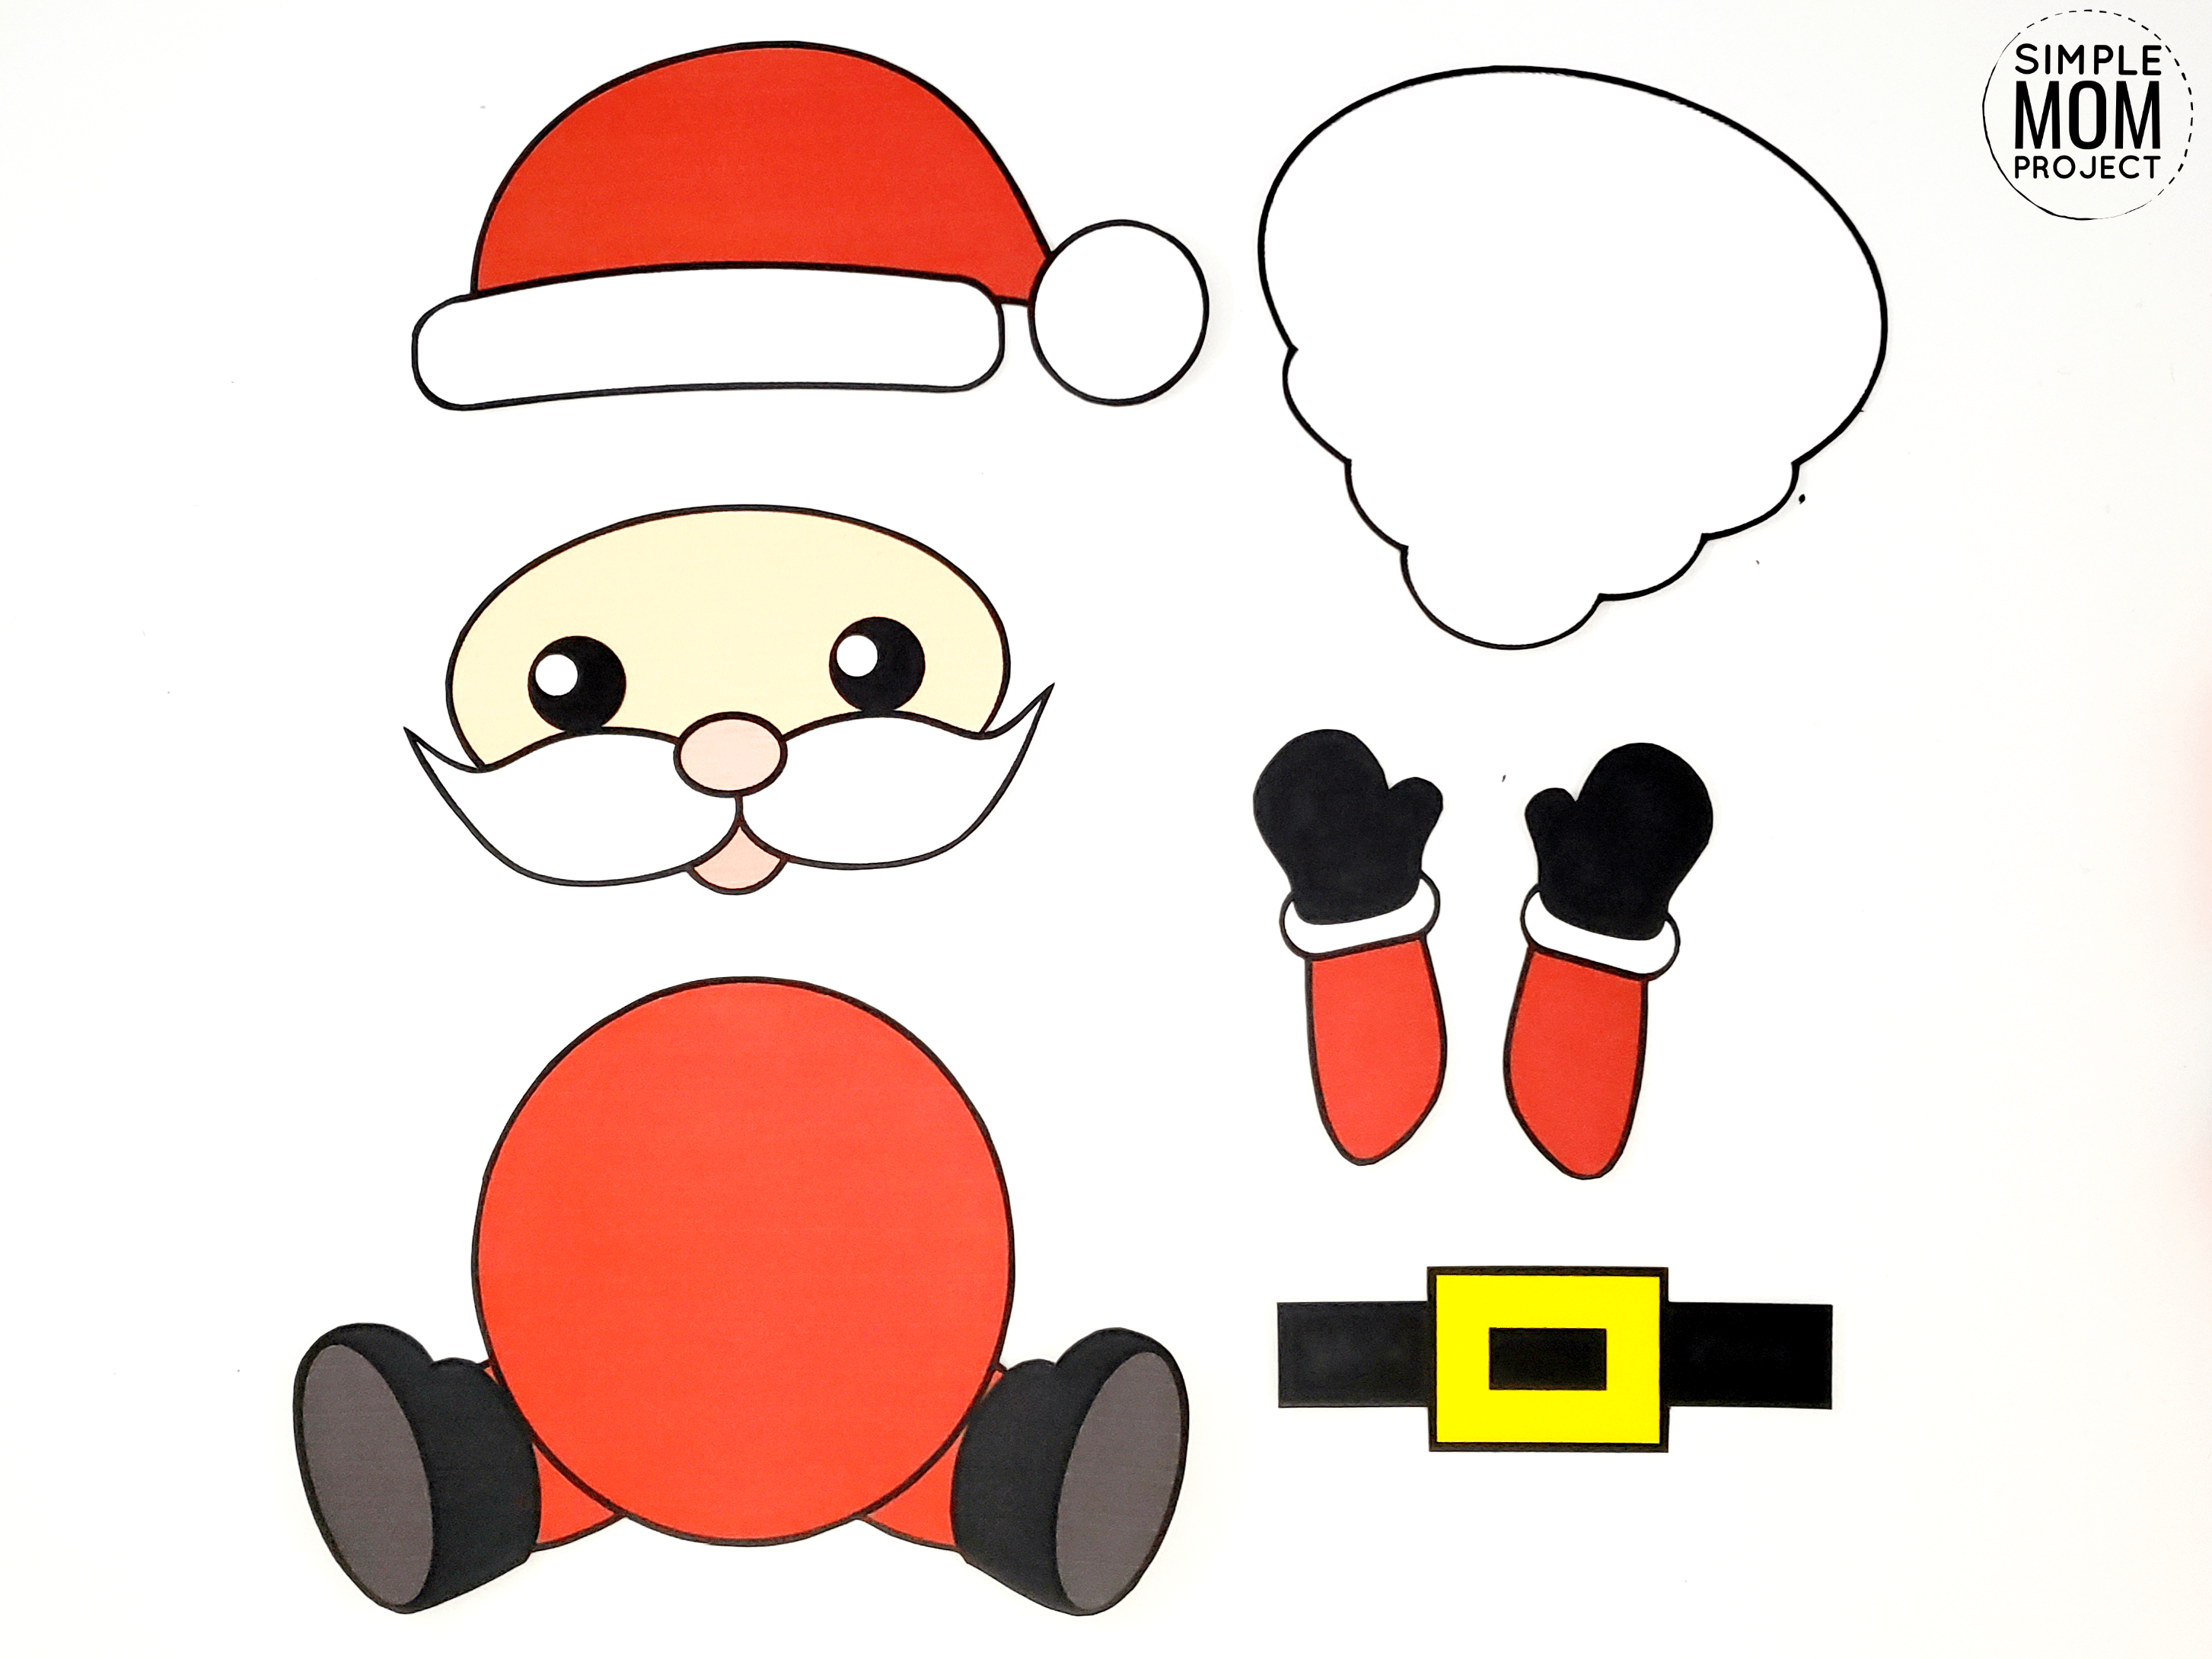 Easy To Make Santa Claus Craft With Free Templates